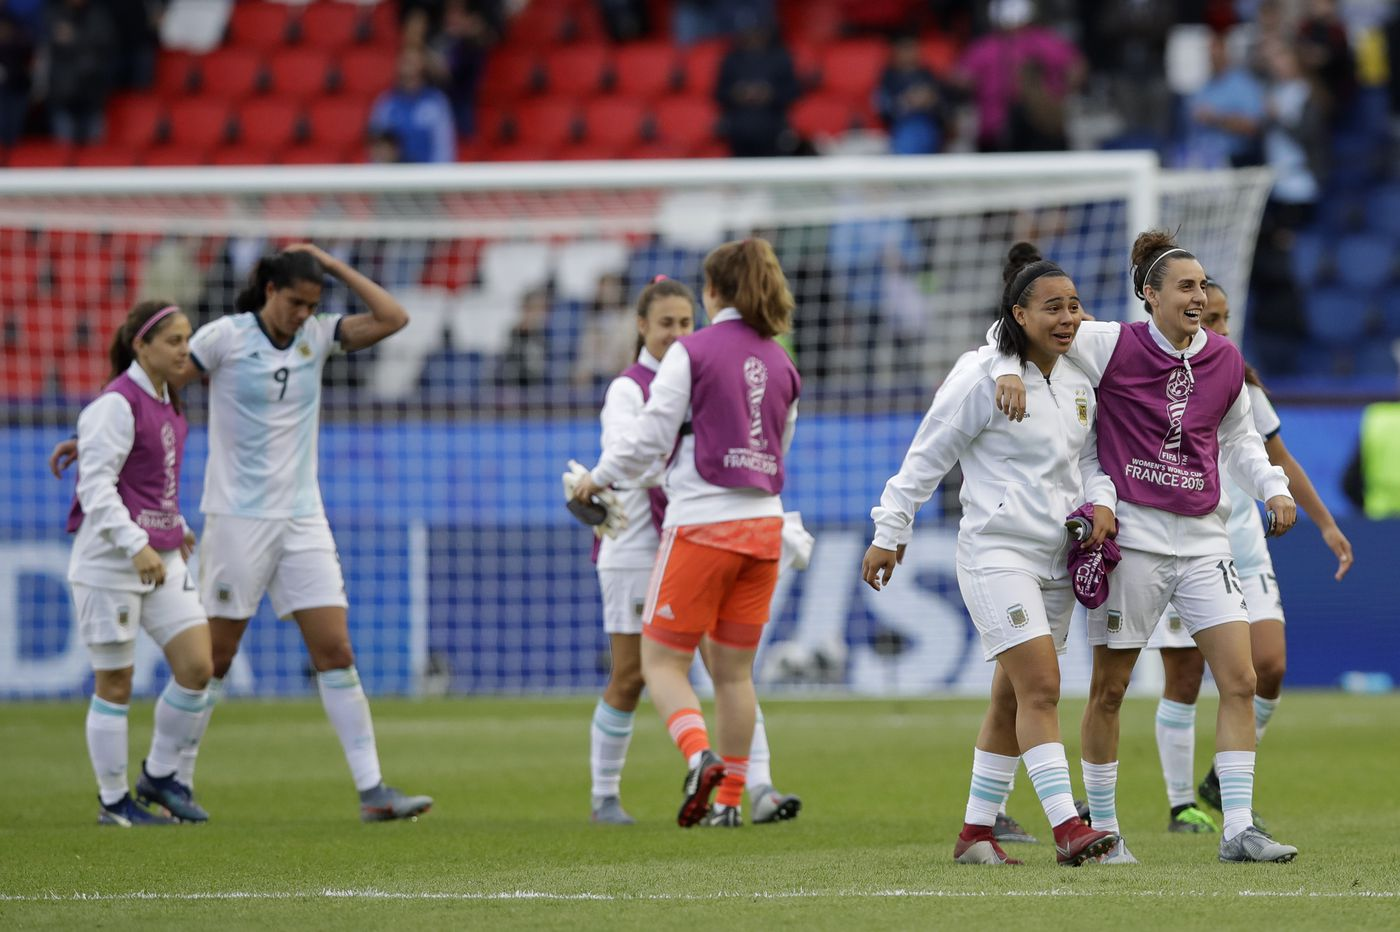 Argentina soaring after historic Women's World Cup opener, eager for England